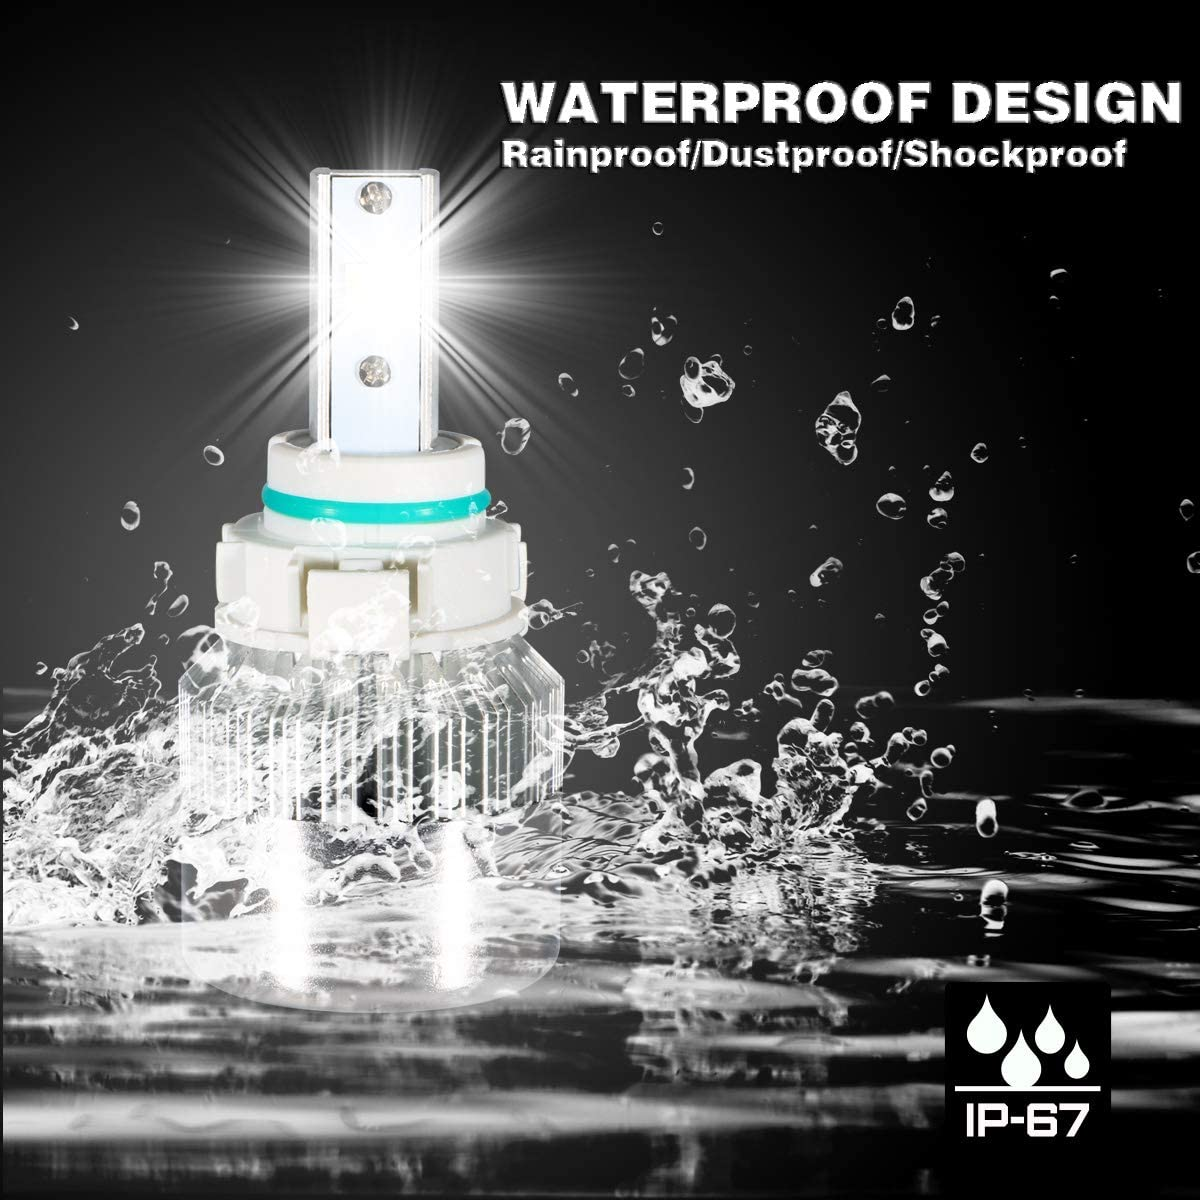 2-Years Warranty DAWOOLUX H1 LED Headlight Bulbs Conversion Flip Chips//Internal Driver-Dual All-in-one Extremely Bright 6000K Cool White 7600 Lumens 72W